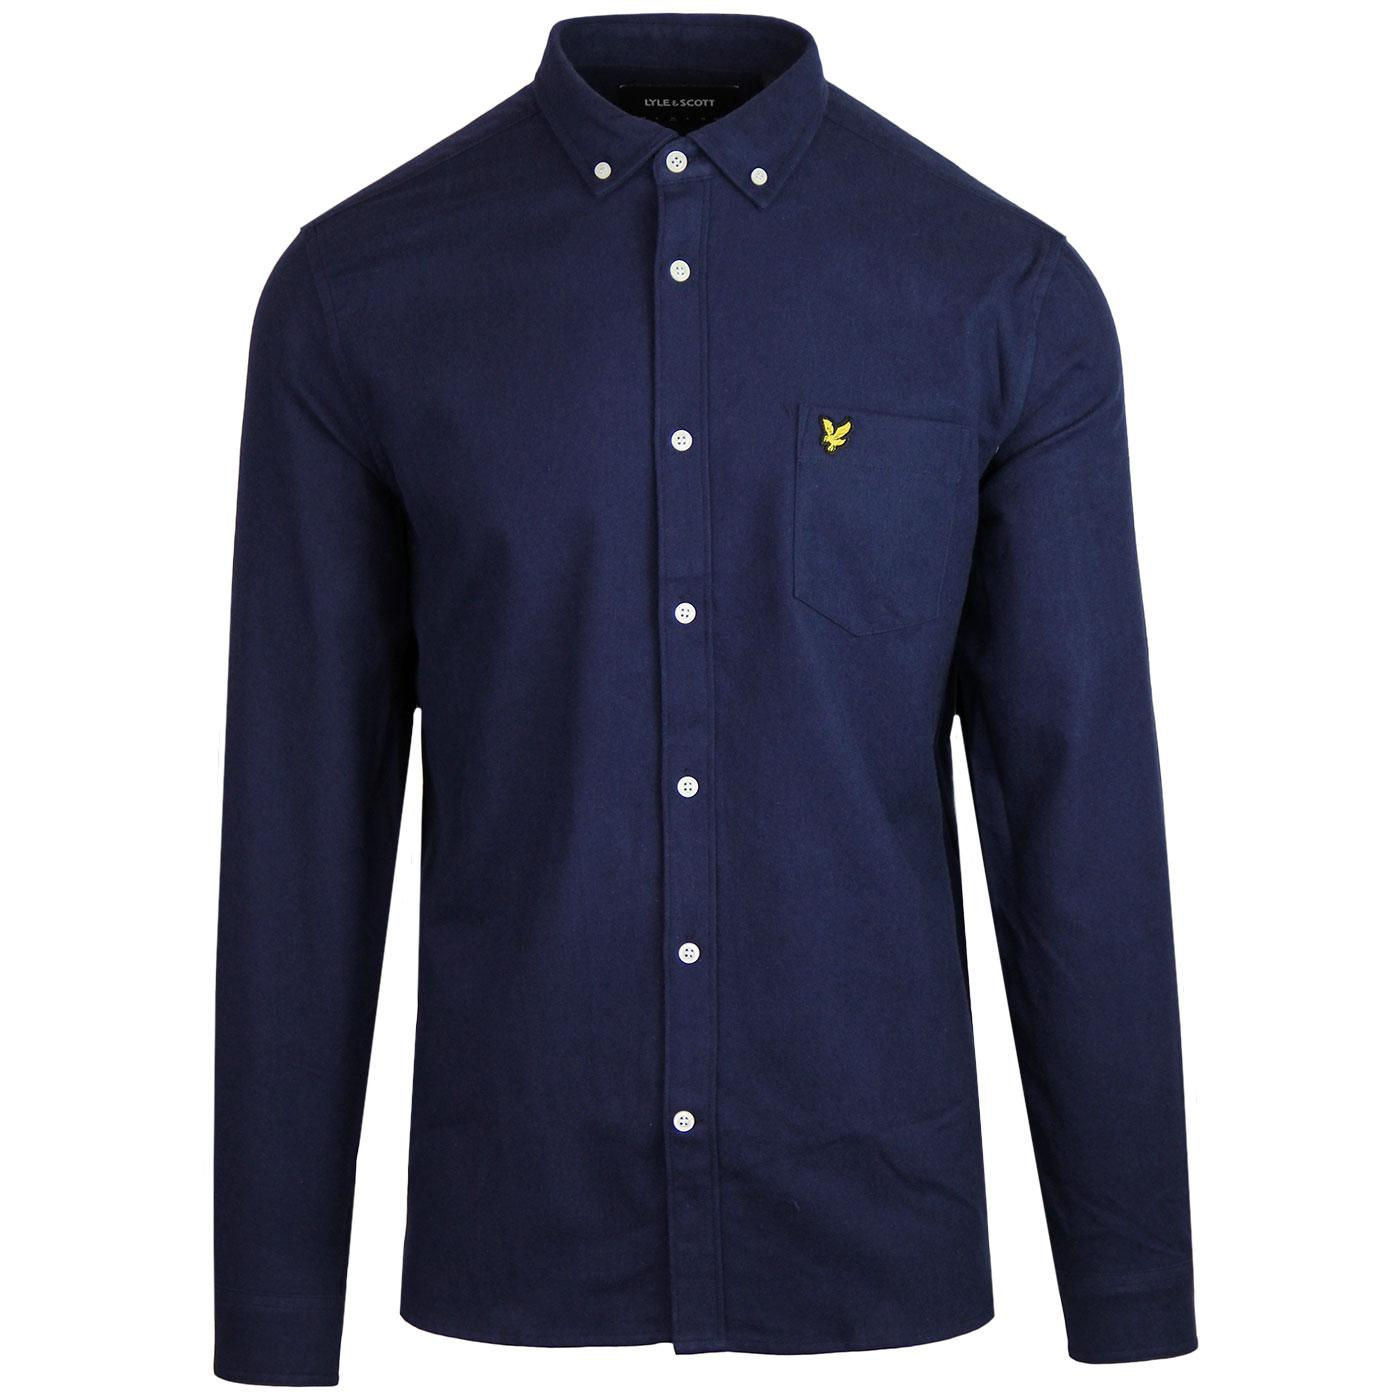 LYLE & SCOTT Retro Mod Winter Flannel Shirt (Navy)